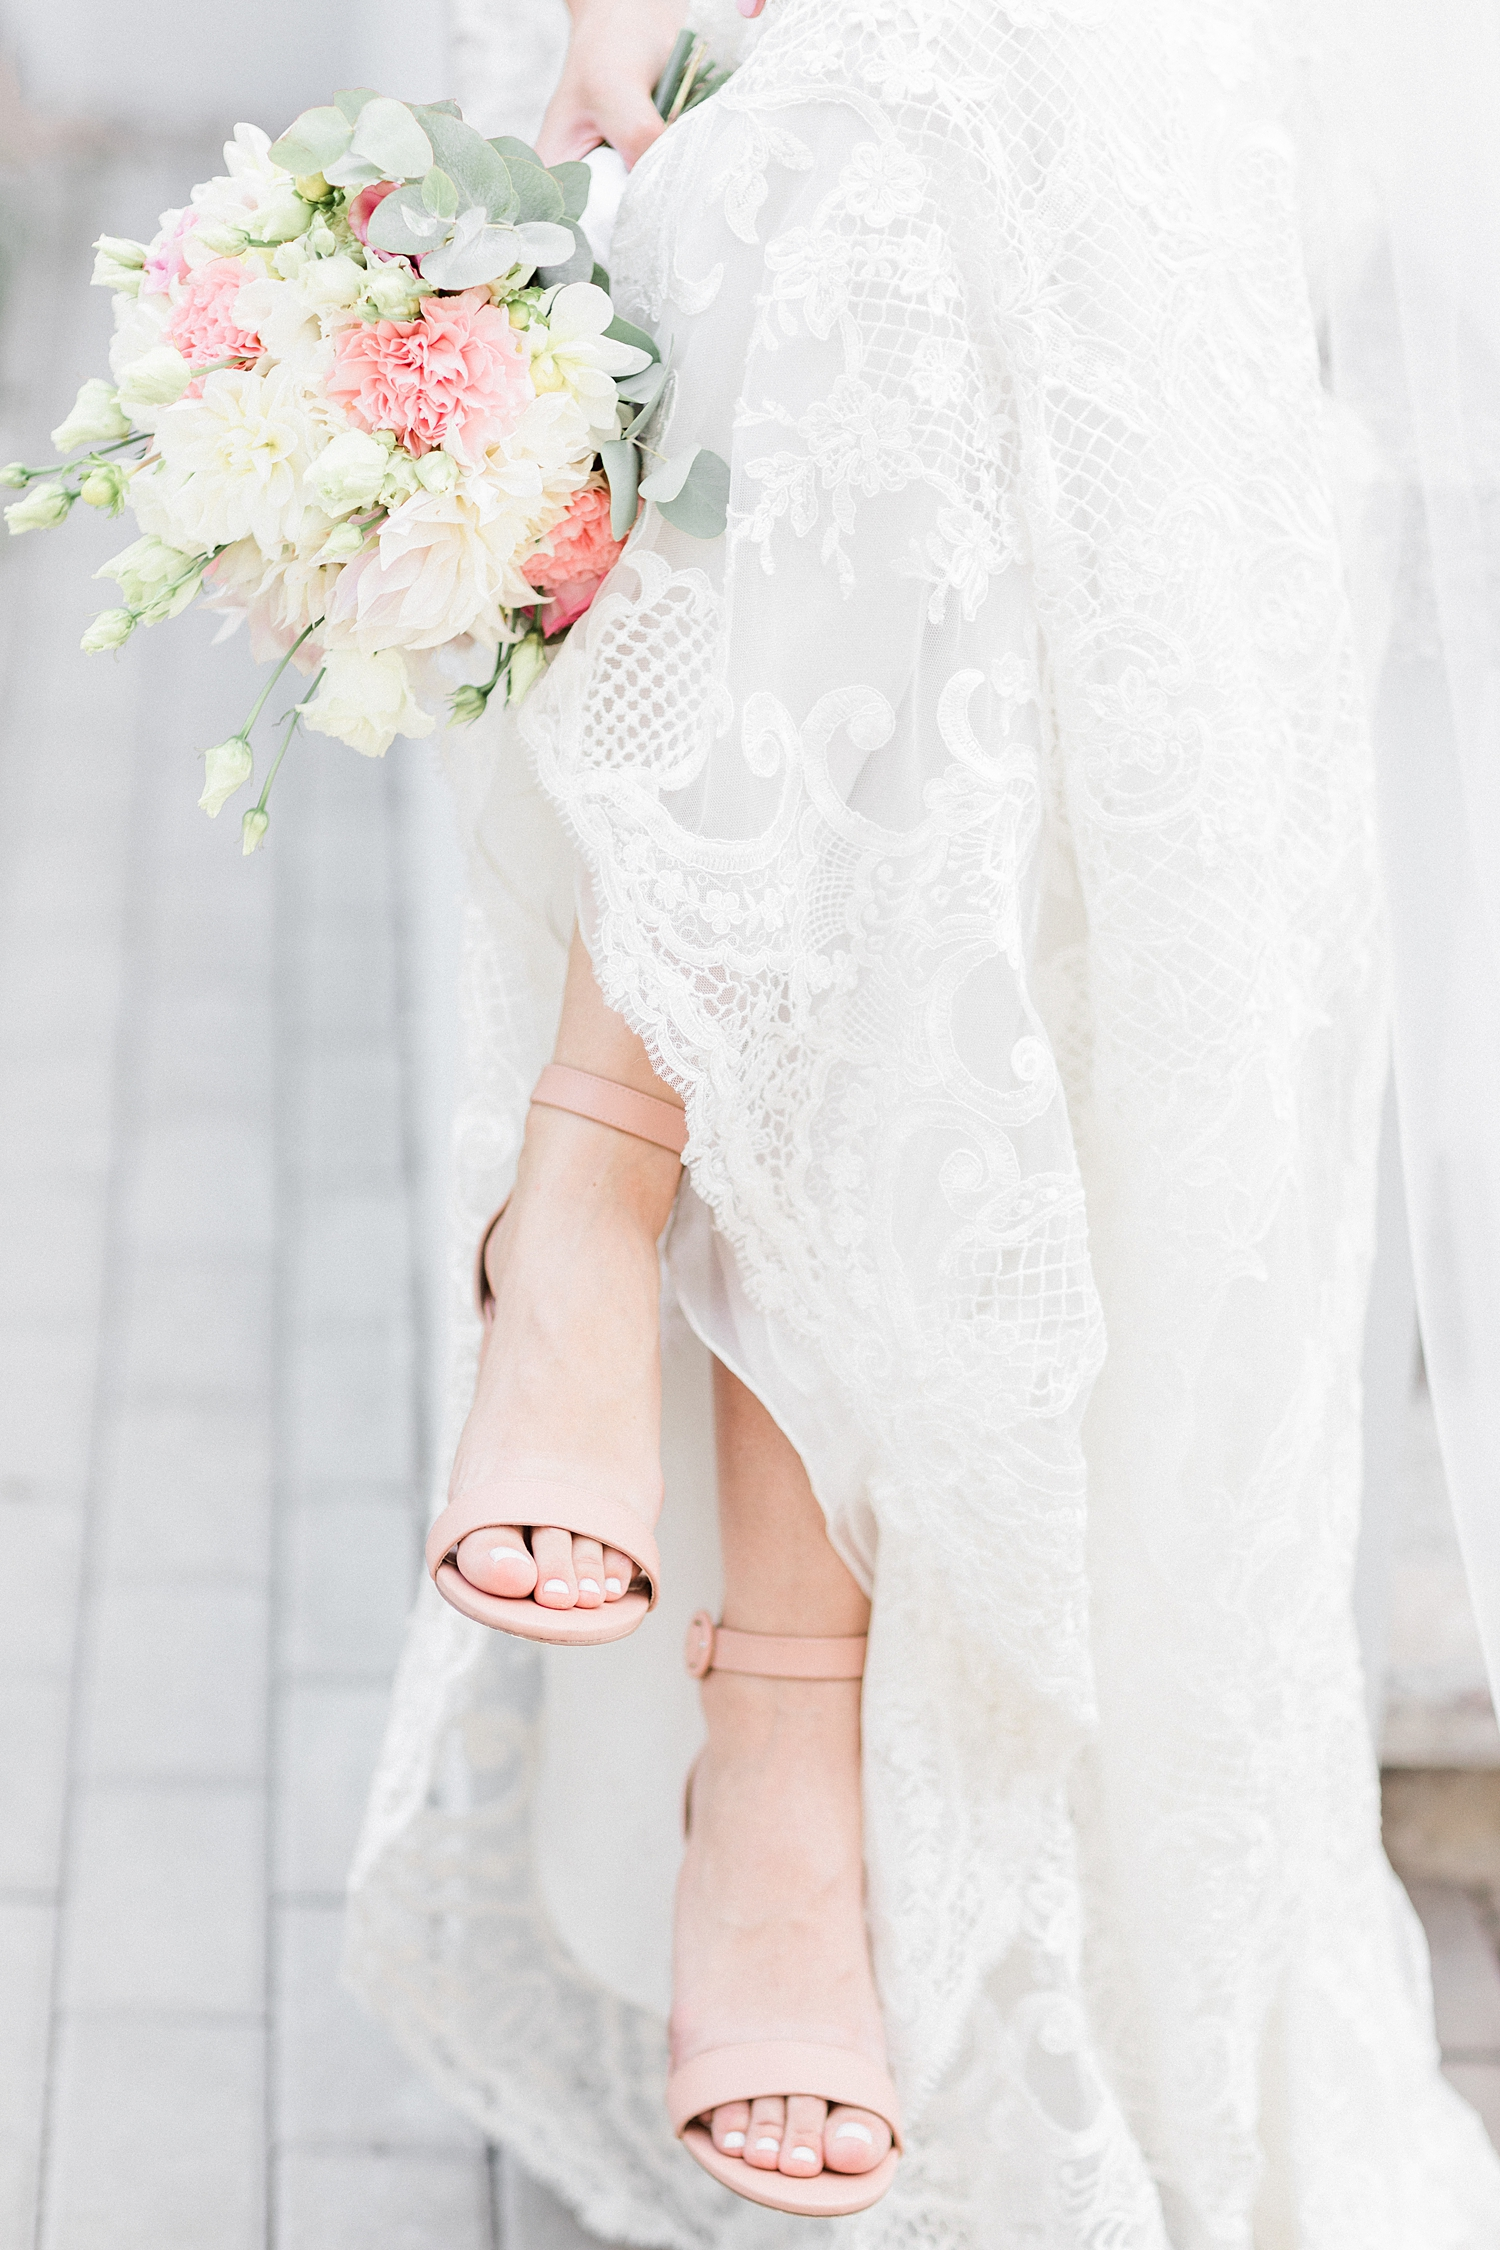 Detail of bridal gown bouquet and shoes- photo by Jurgita Lukos Photography